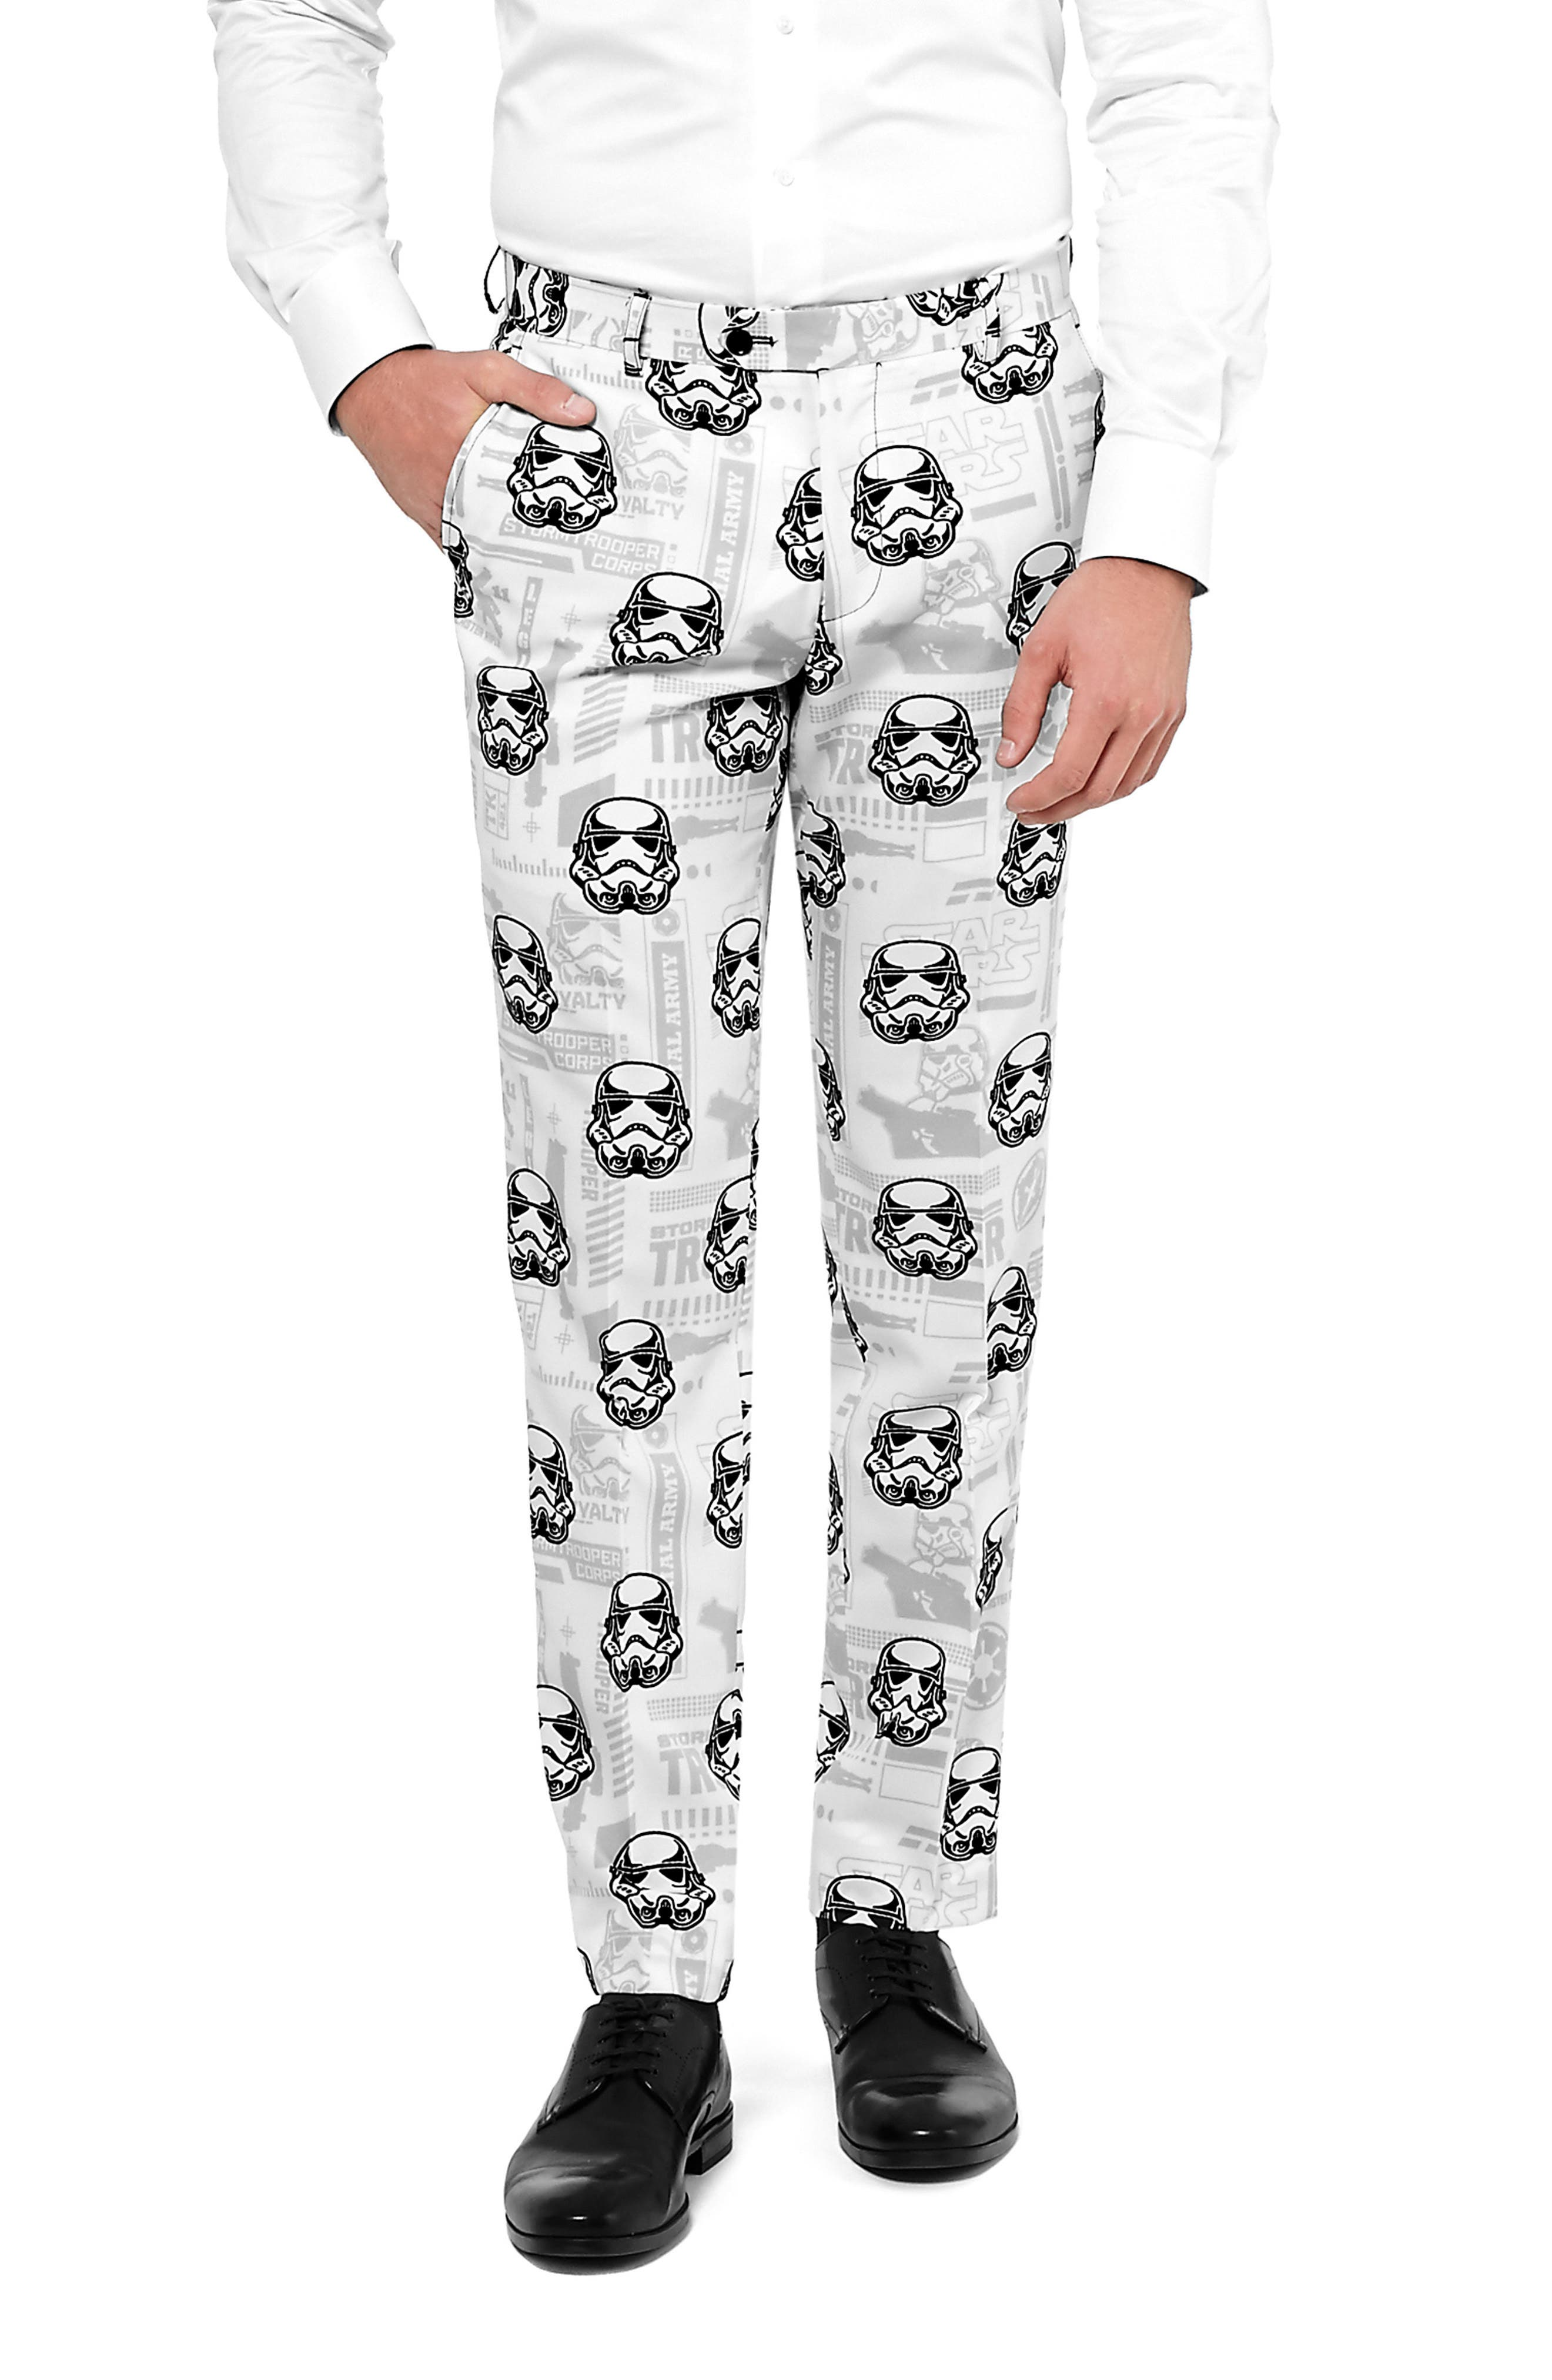 Stormtrooper Trim Fit Two-Piece Suit with Tie,                         Main,                         color, 100